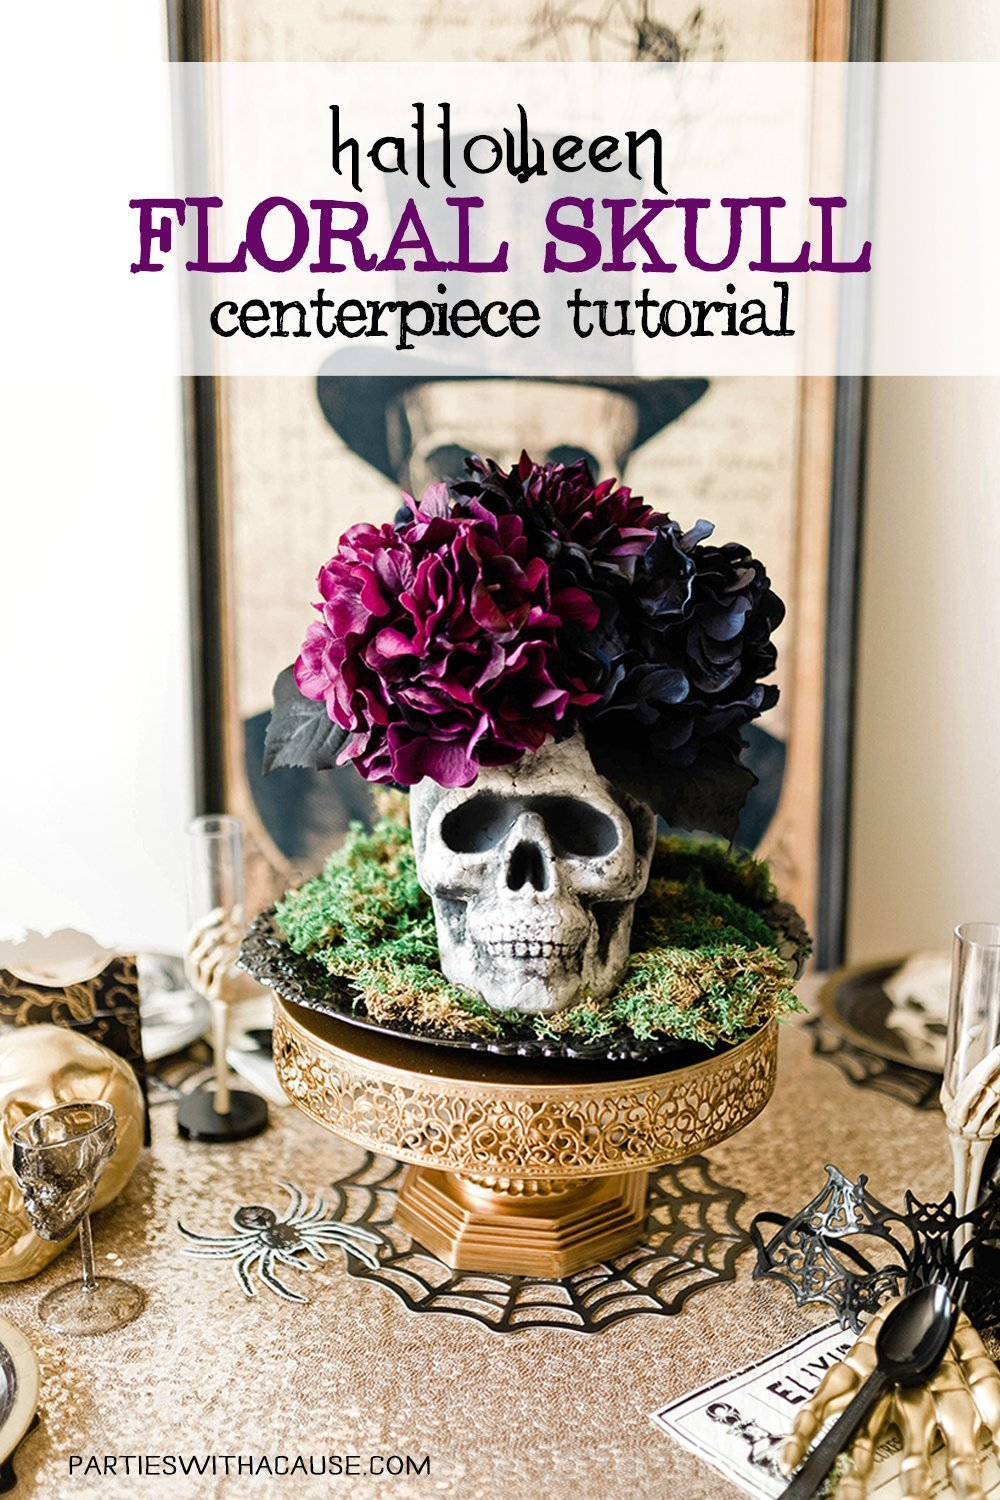 A fun adult Halloween crafts - this floral skull centerpiece over at Parties With A Cause